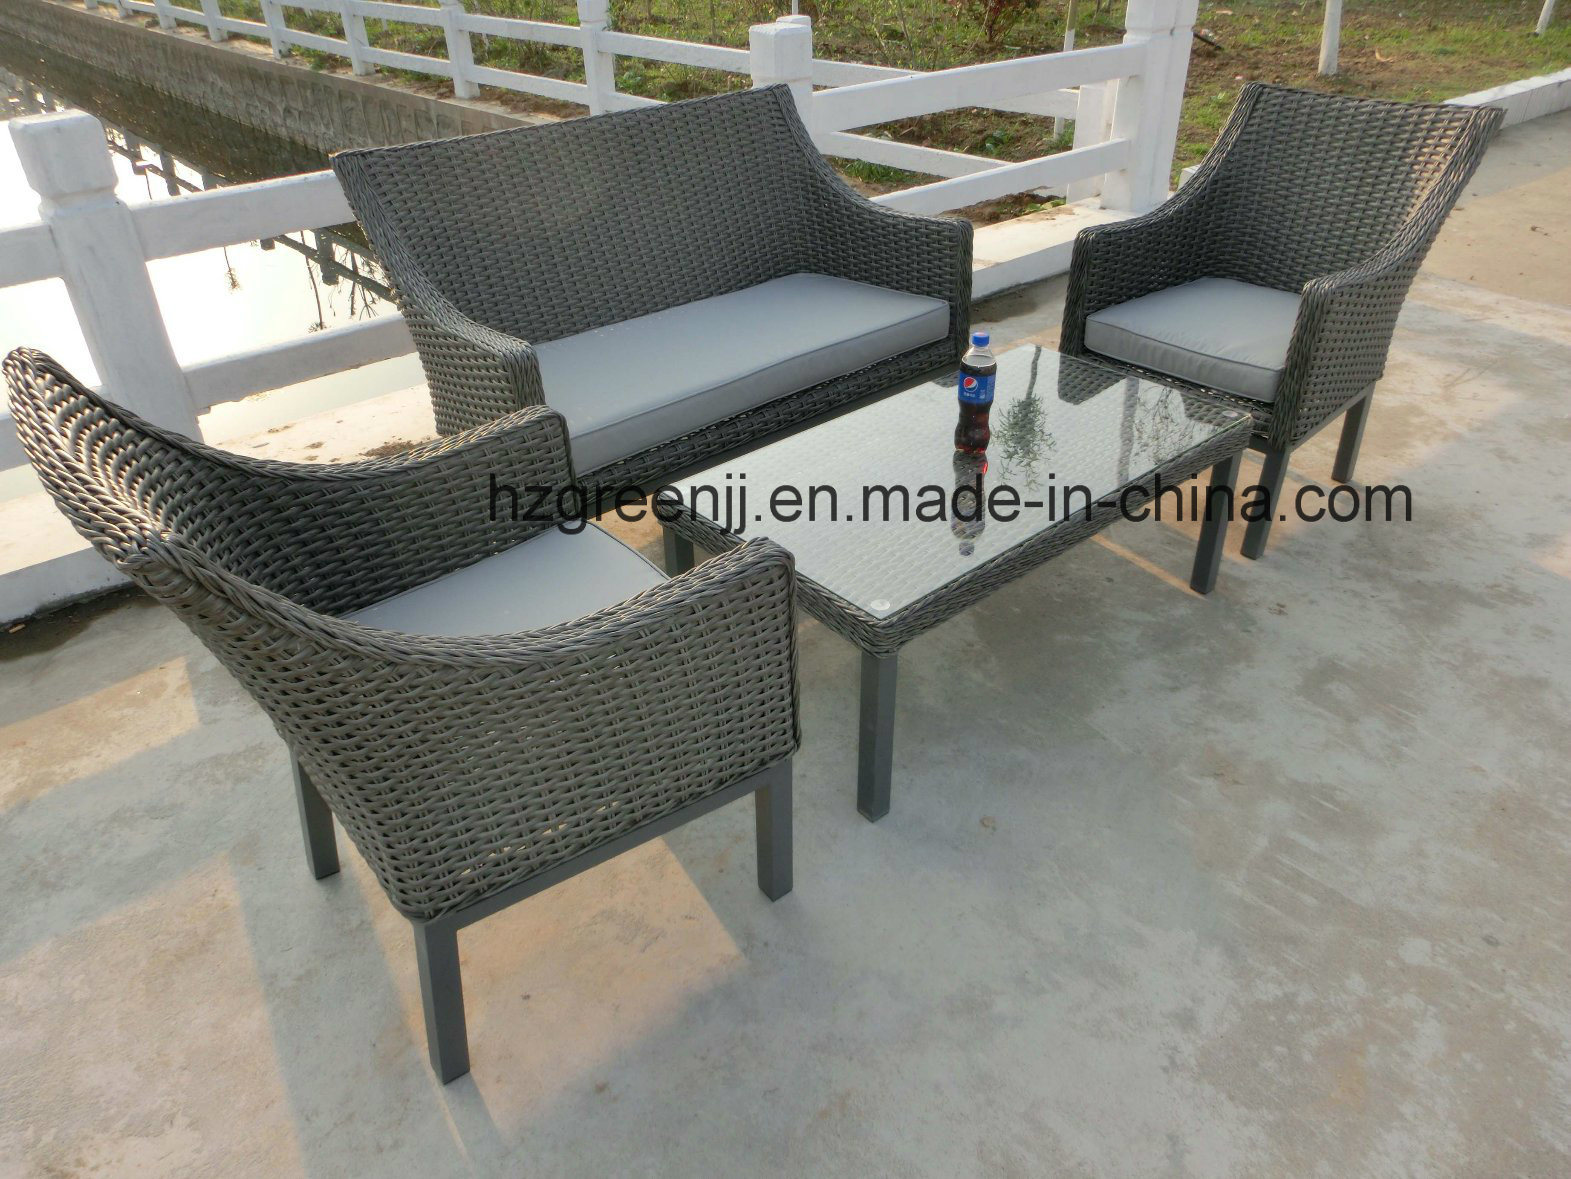 Half Moon Curve Flat Wicker Furniture